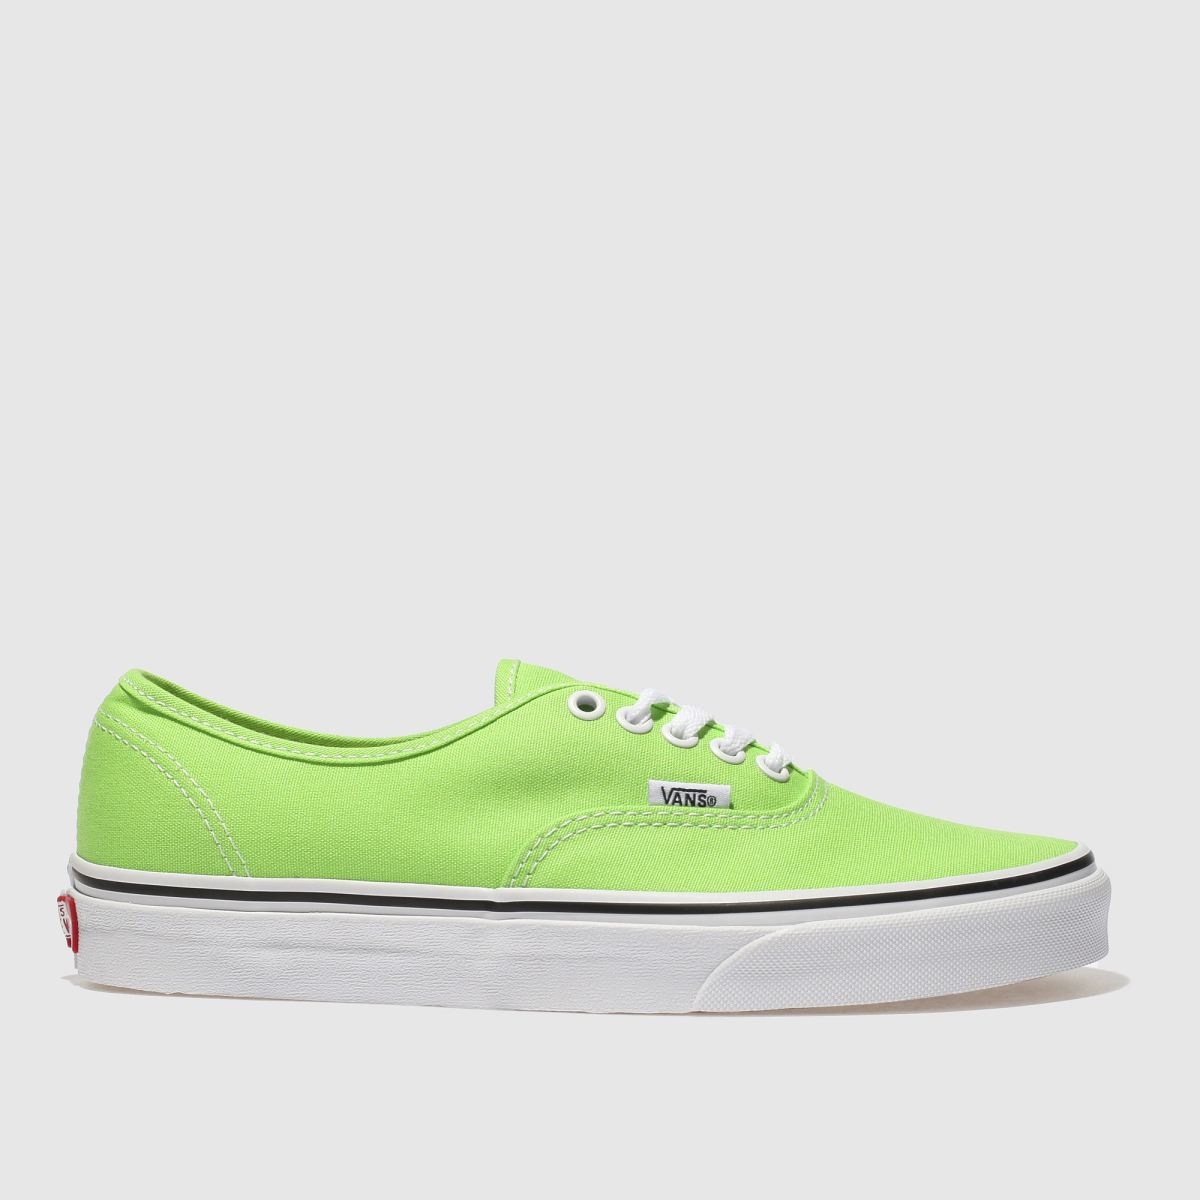 Vans Green Authentic Trainers